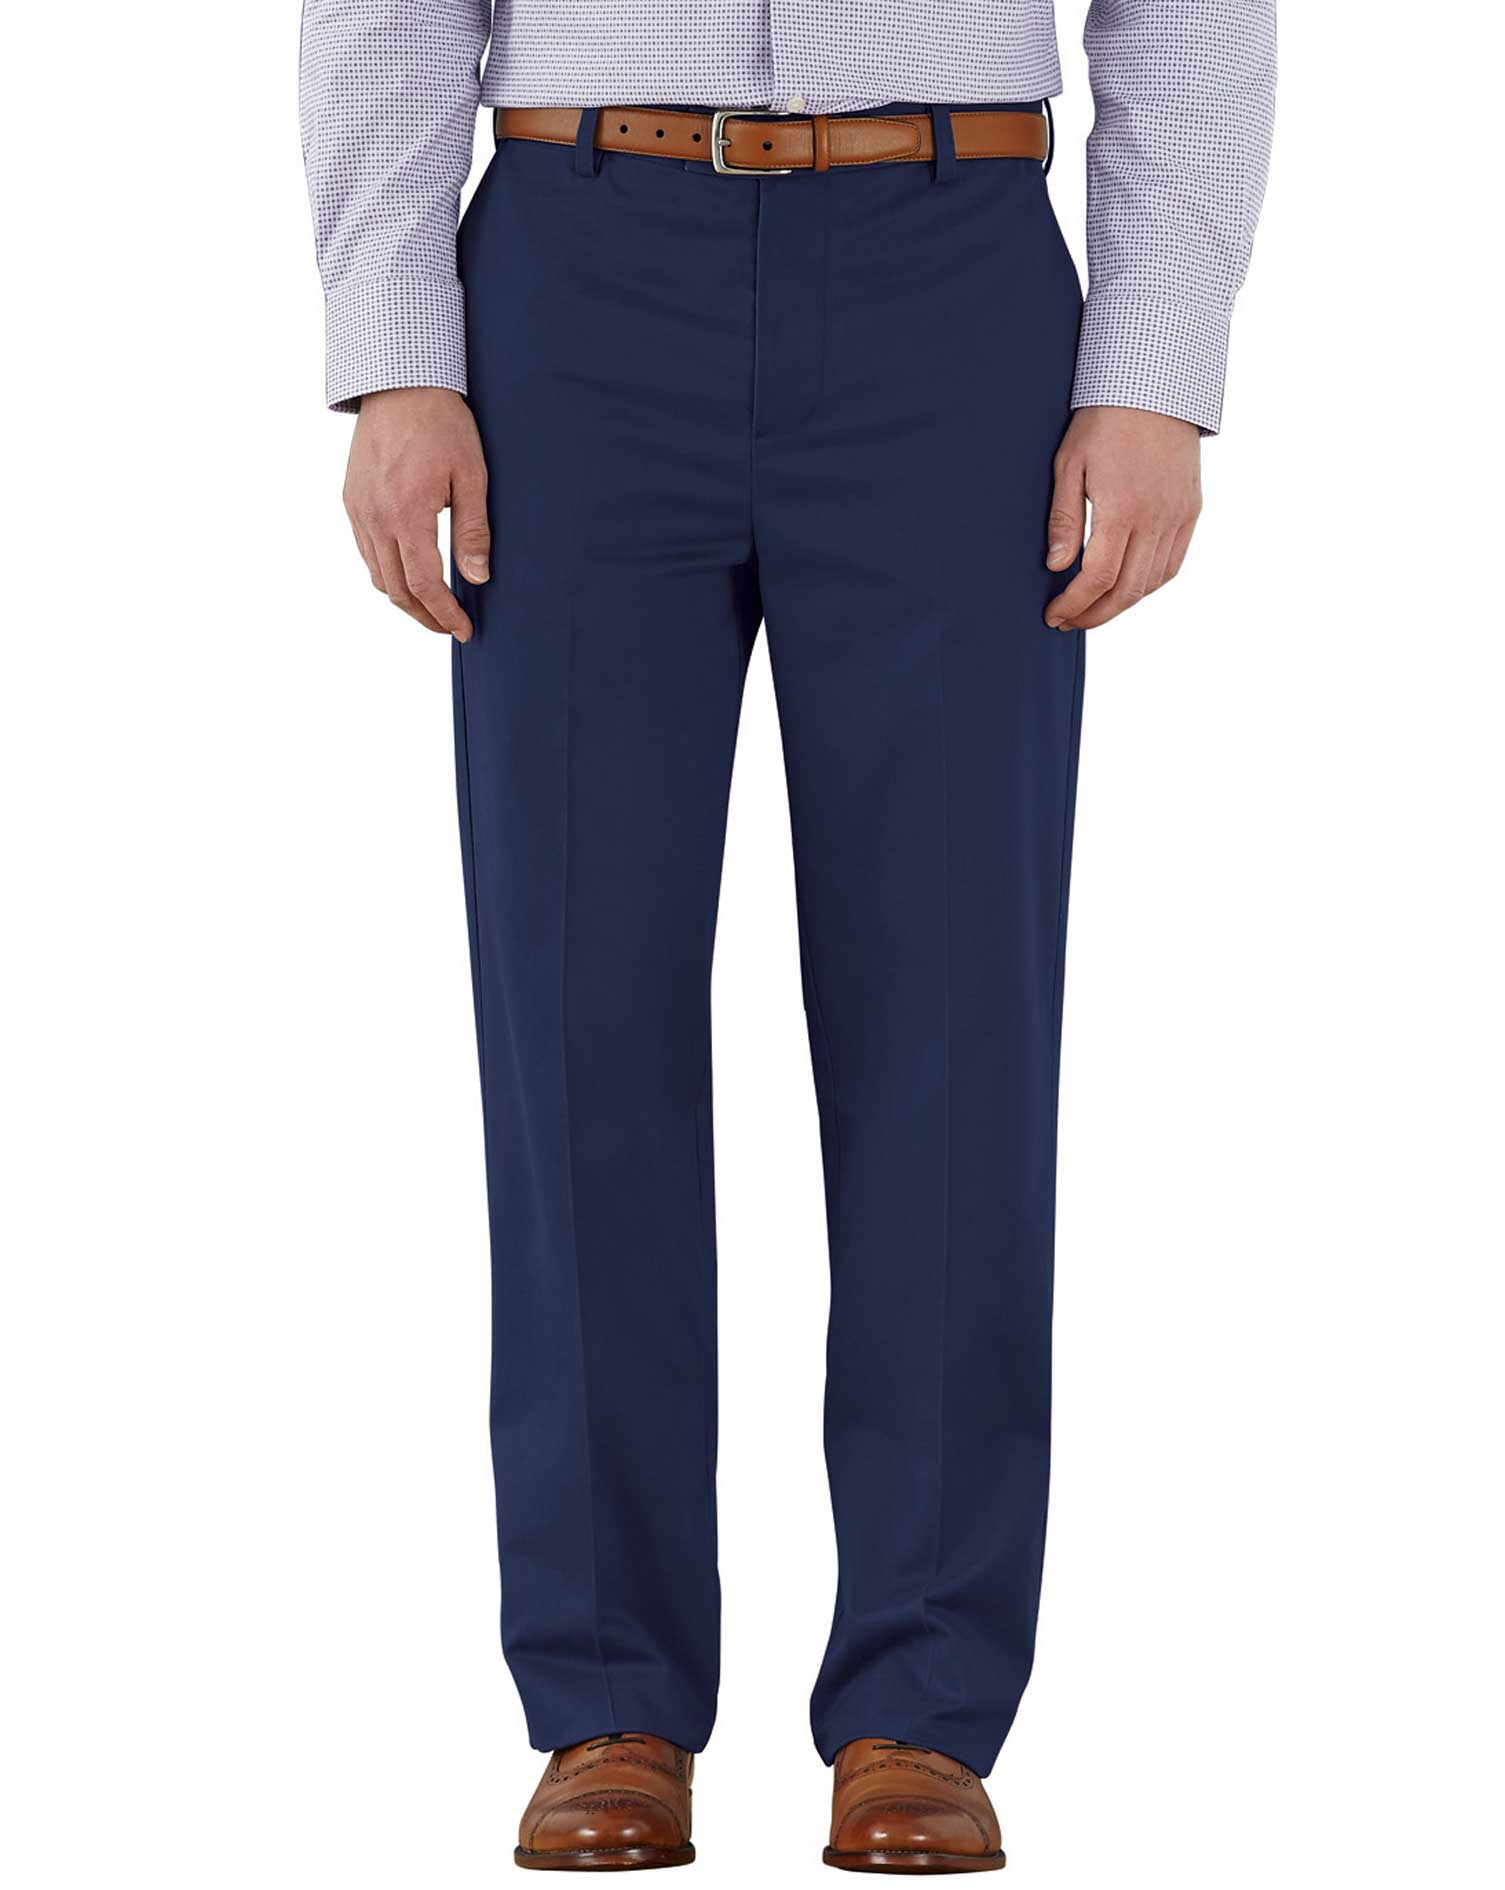 Marine Blue Classic Fit Flat Front Non-Iron Cotton Chino Trousers Size W38 L29 by Charles Tyrwhitt